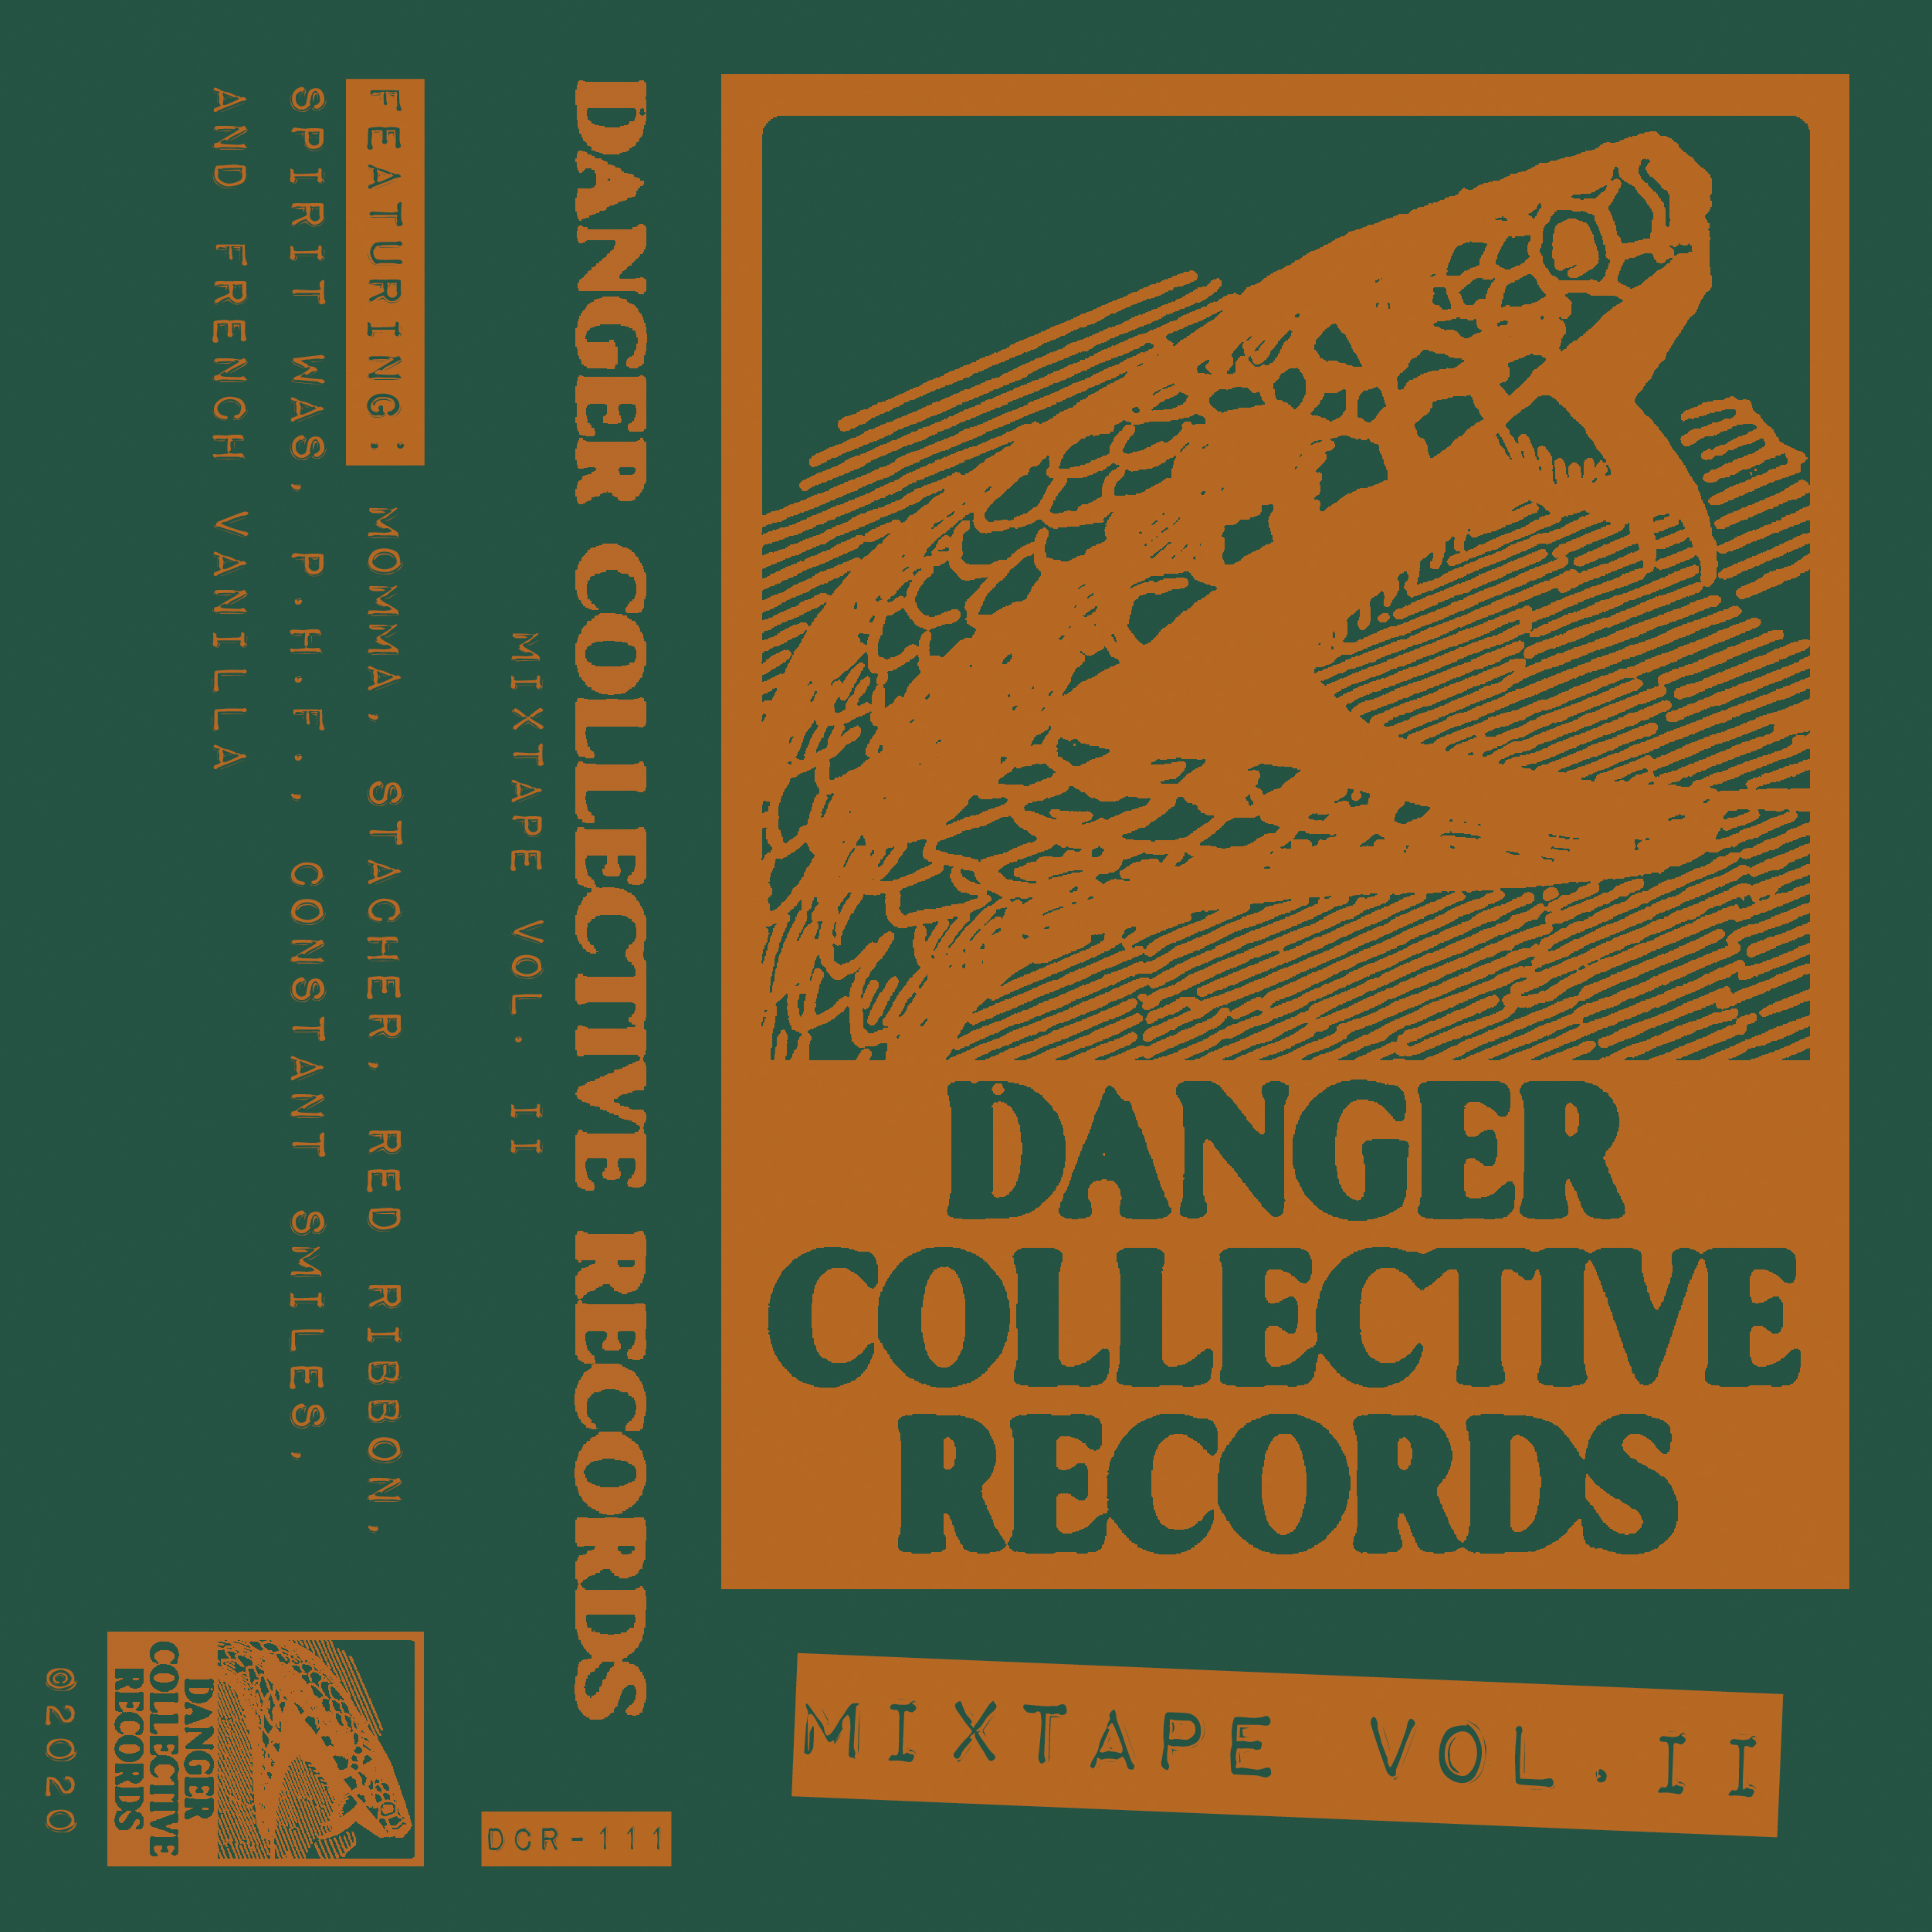 DCR Mixtape Vol. II